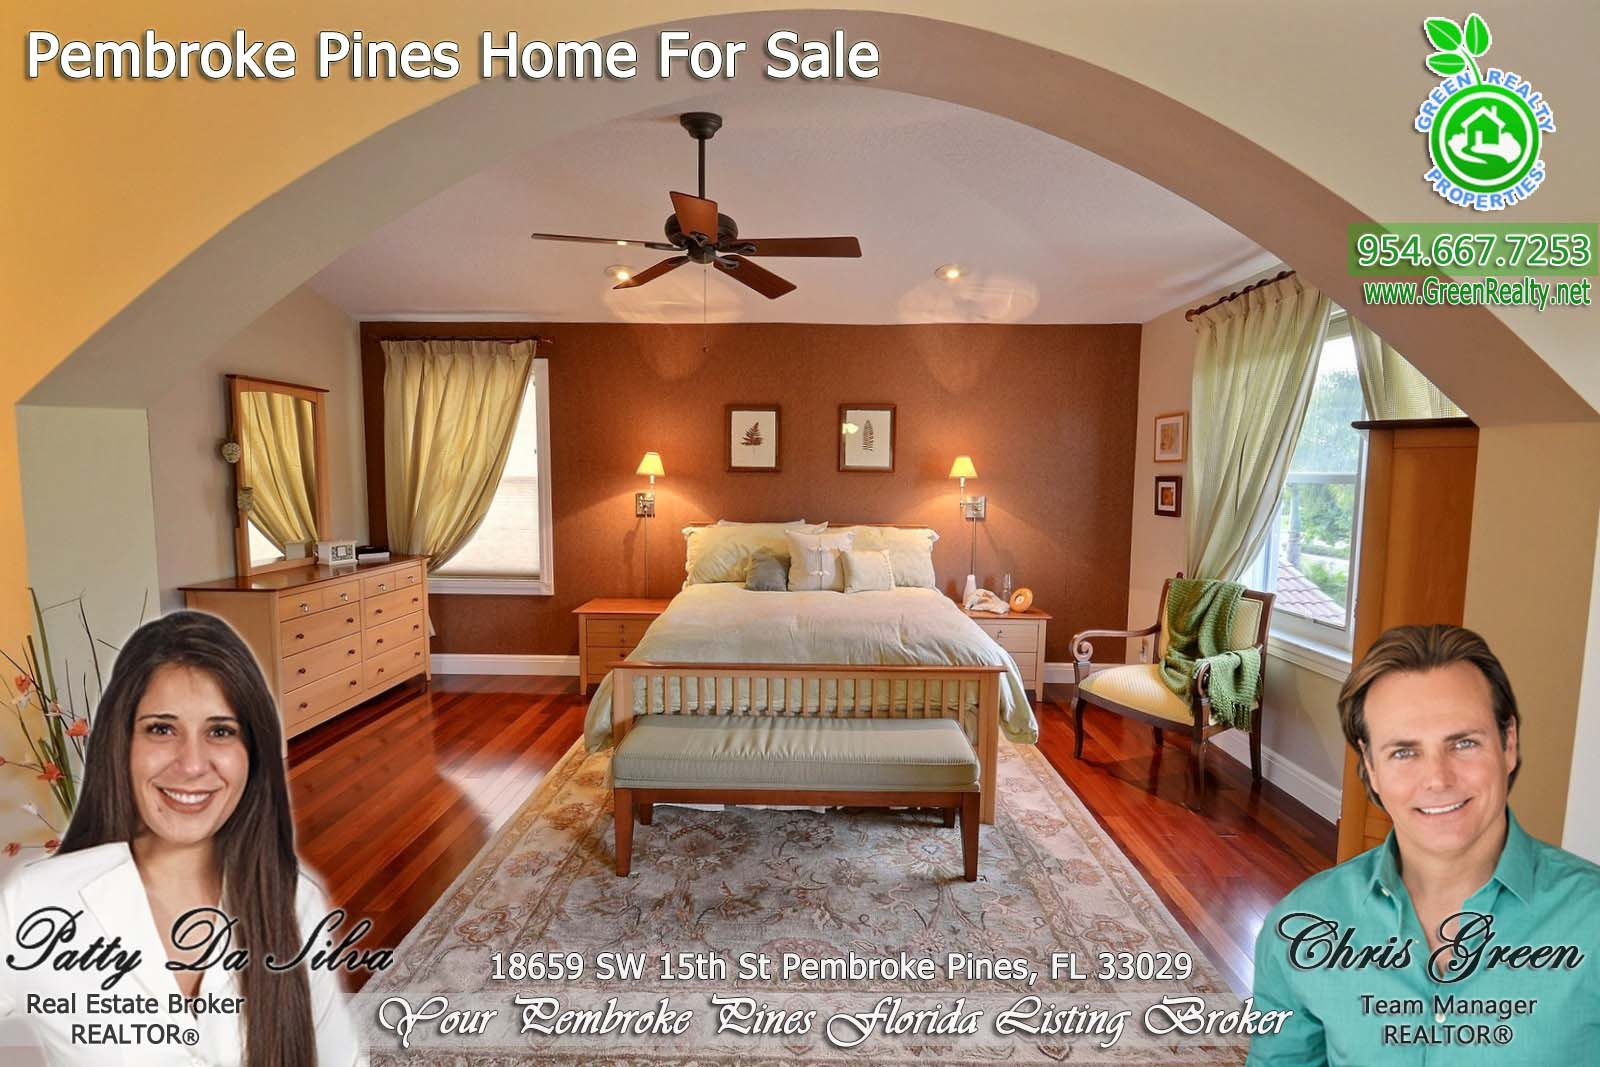 32 Pembroke Pines Real Estate Agents (4)